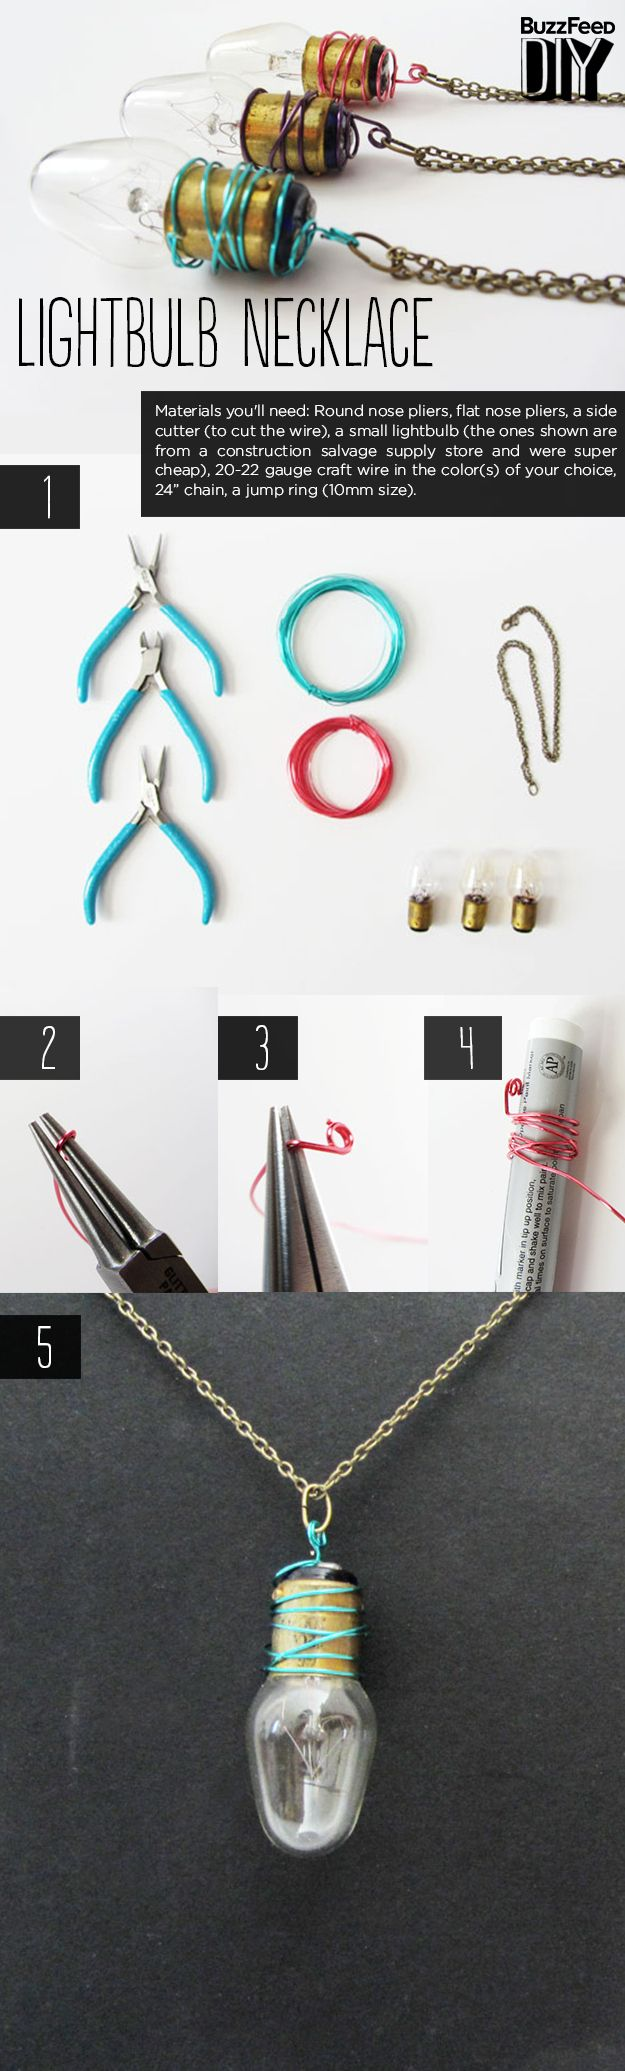 creates a lightbulb necklace.   3 Crazy Things To Do With Old Lightbulbs